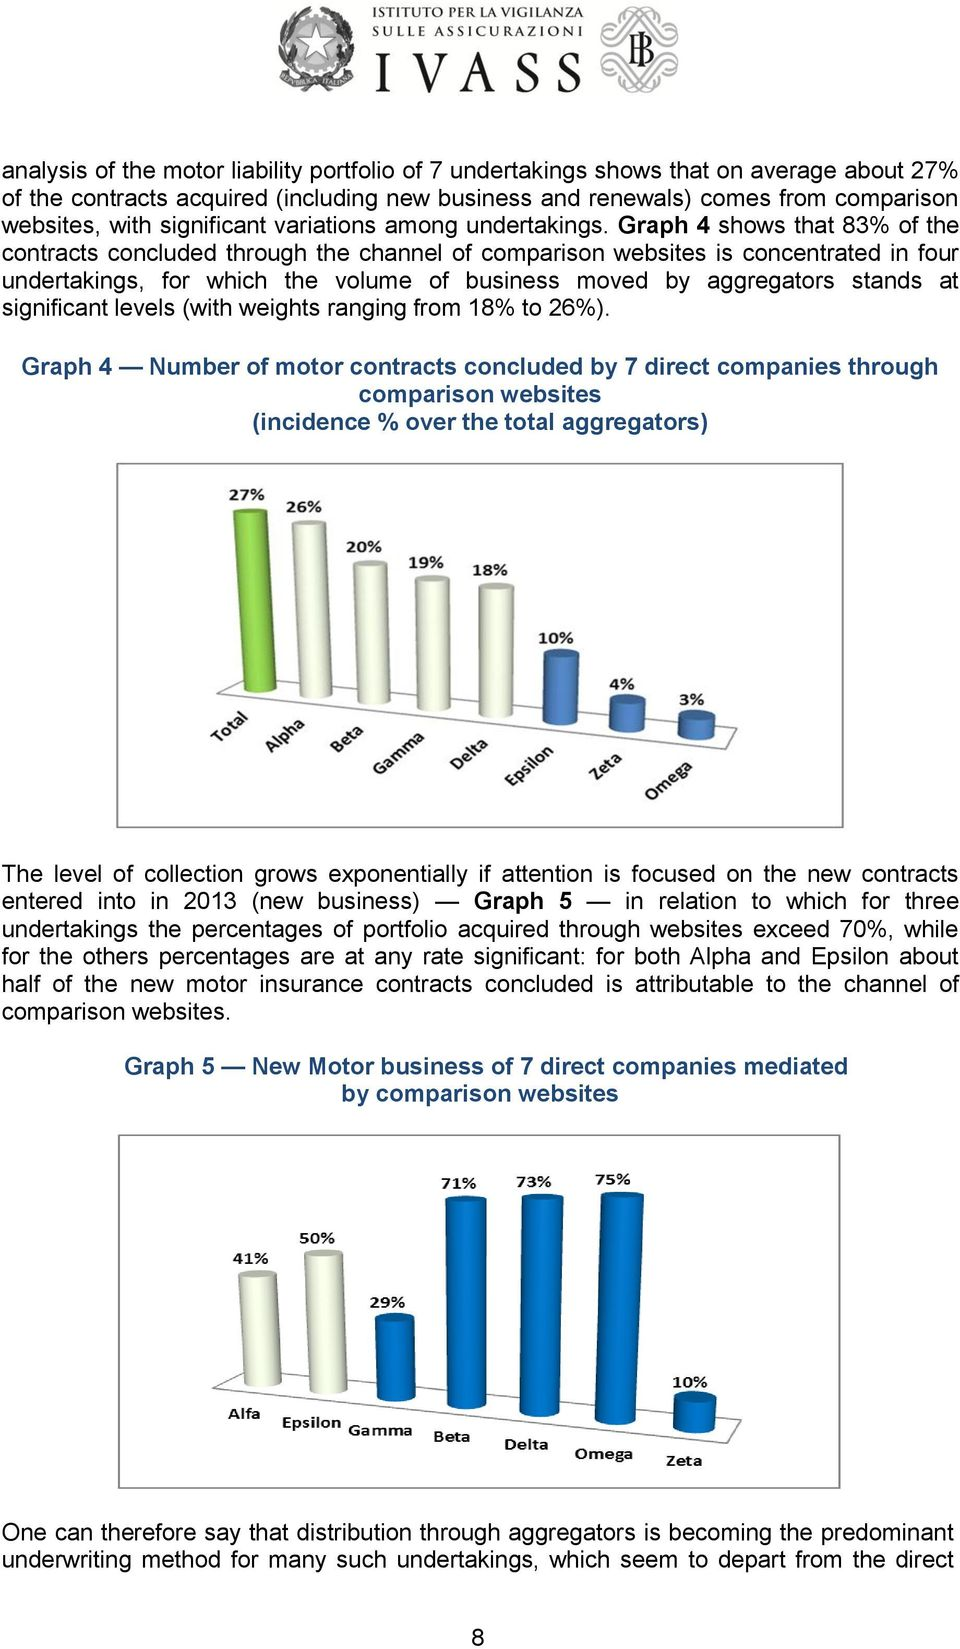 Graph 4 shows that 83% of the contracts concluded through the channel of comparison websites is concentrated in four undertakings, for which the volume of business moved by aggregators stands at